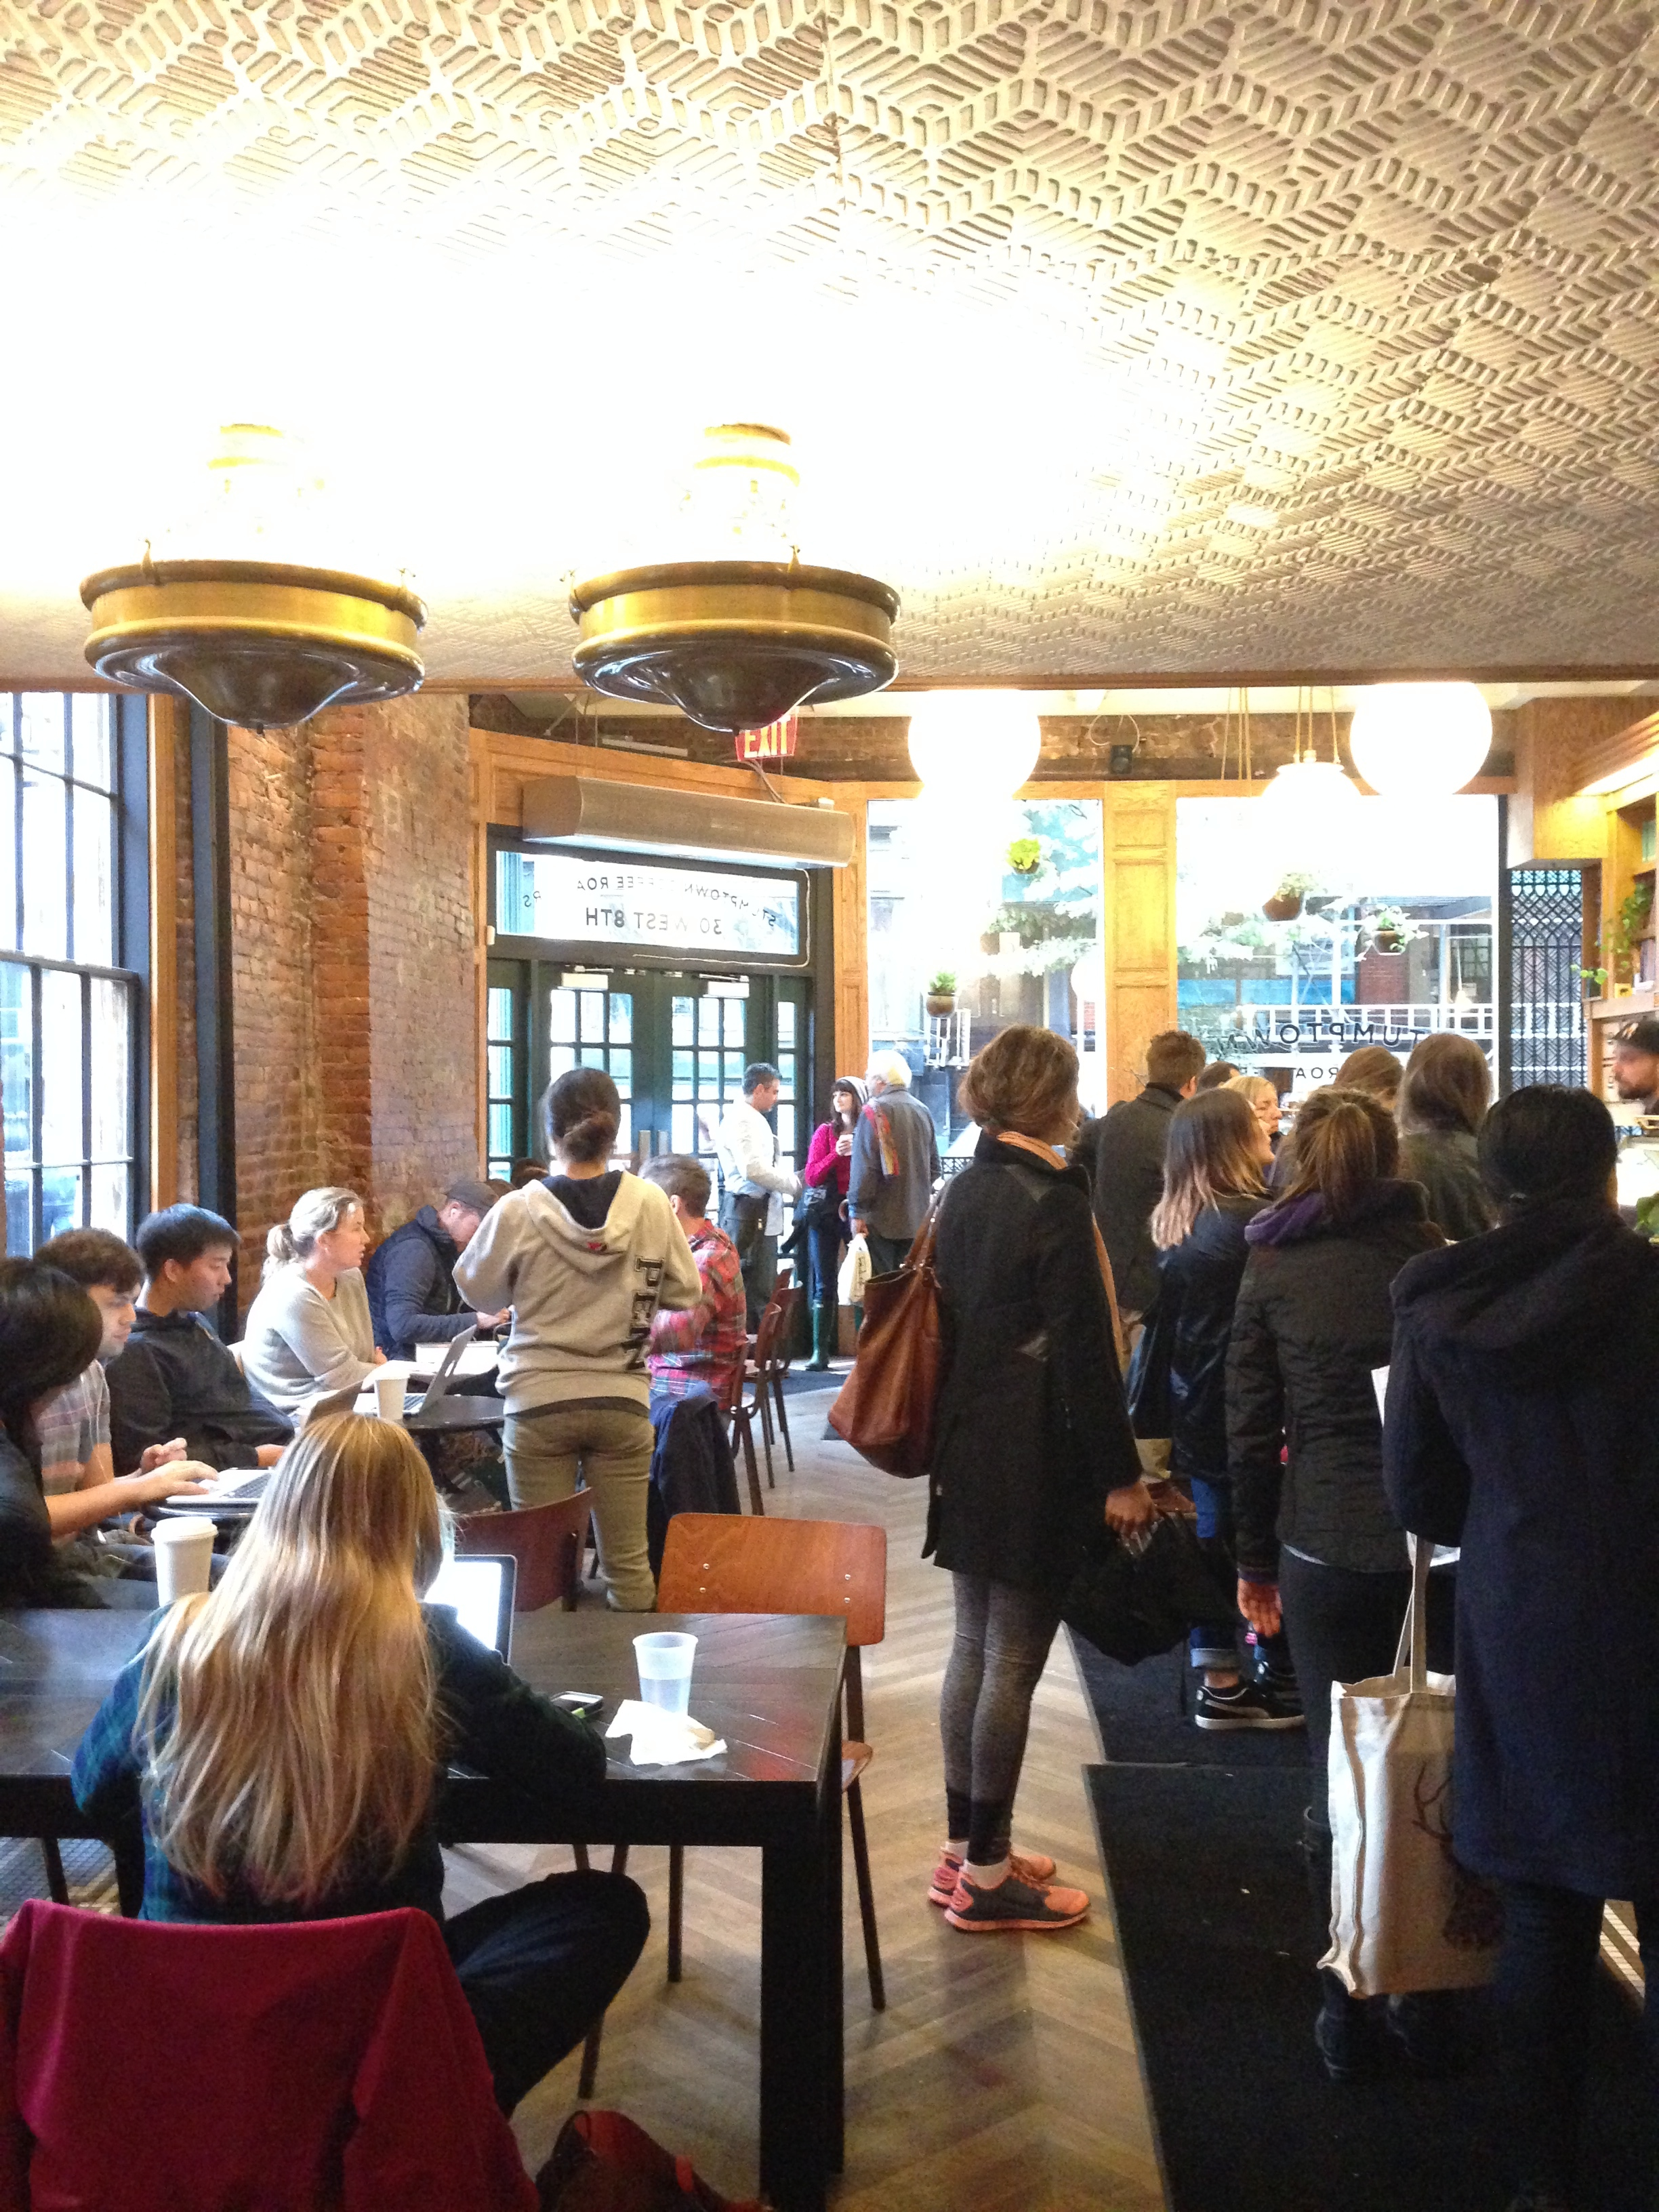 Crowded.. To be fair, it was $1 brew coffees for National Coffee Day